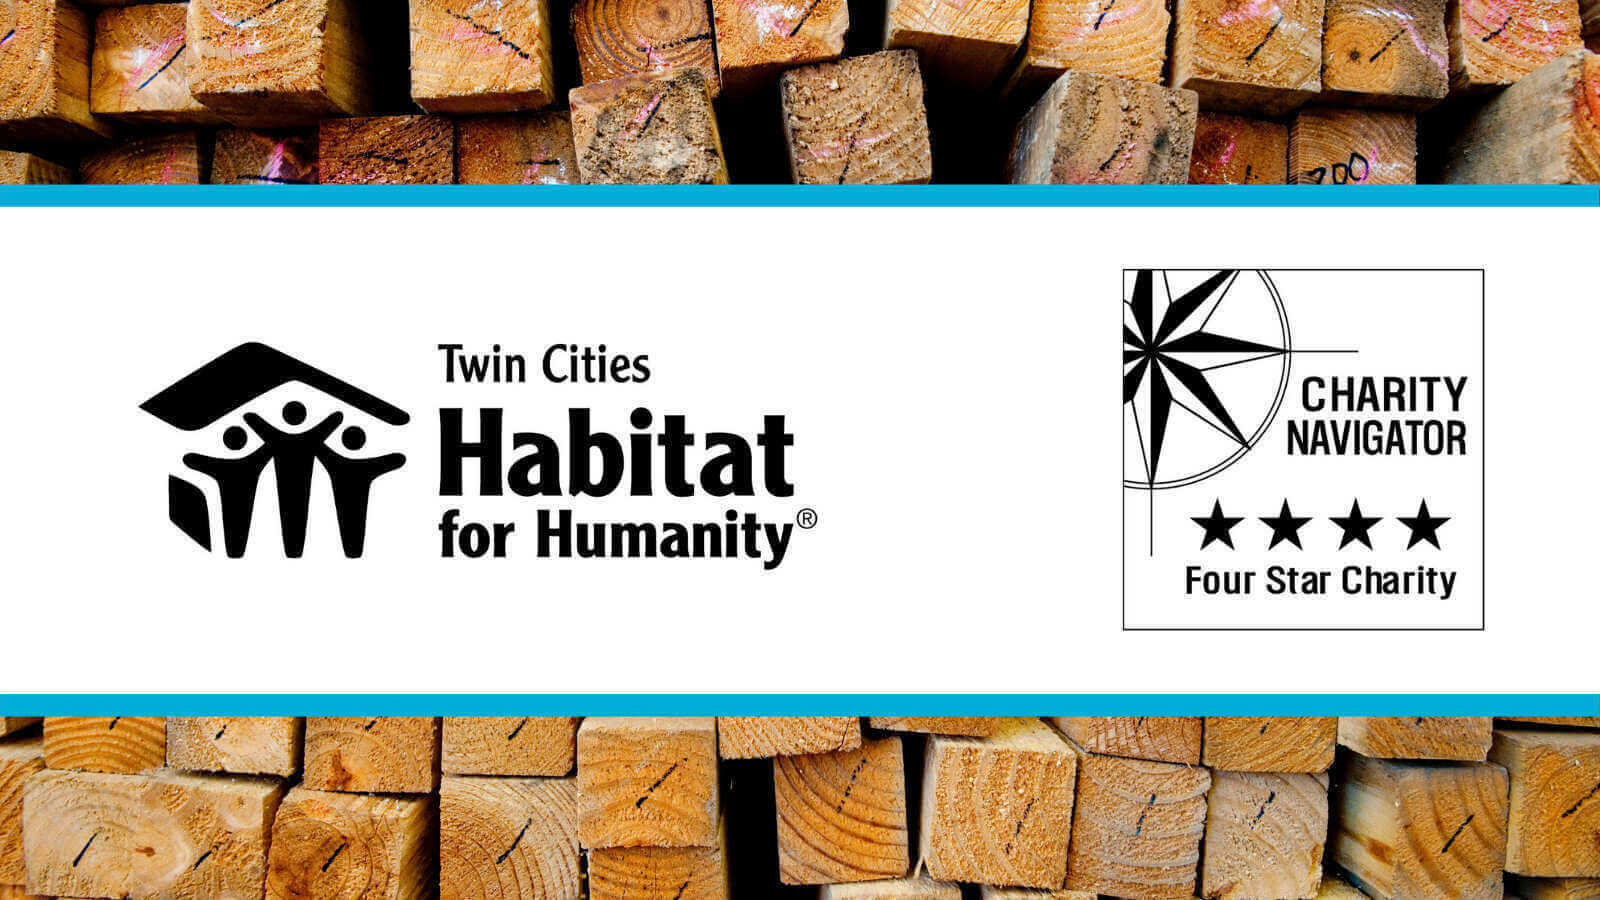 A white banner overlaying an image of the end of a pile of wooden beams. The white banner is framed by a light blue band. Inside the banner is the Twin Cities habitat logo on the left, and the Charity Navigator four-star logo on the right. Both are in black.